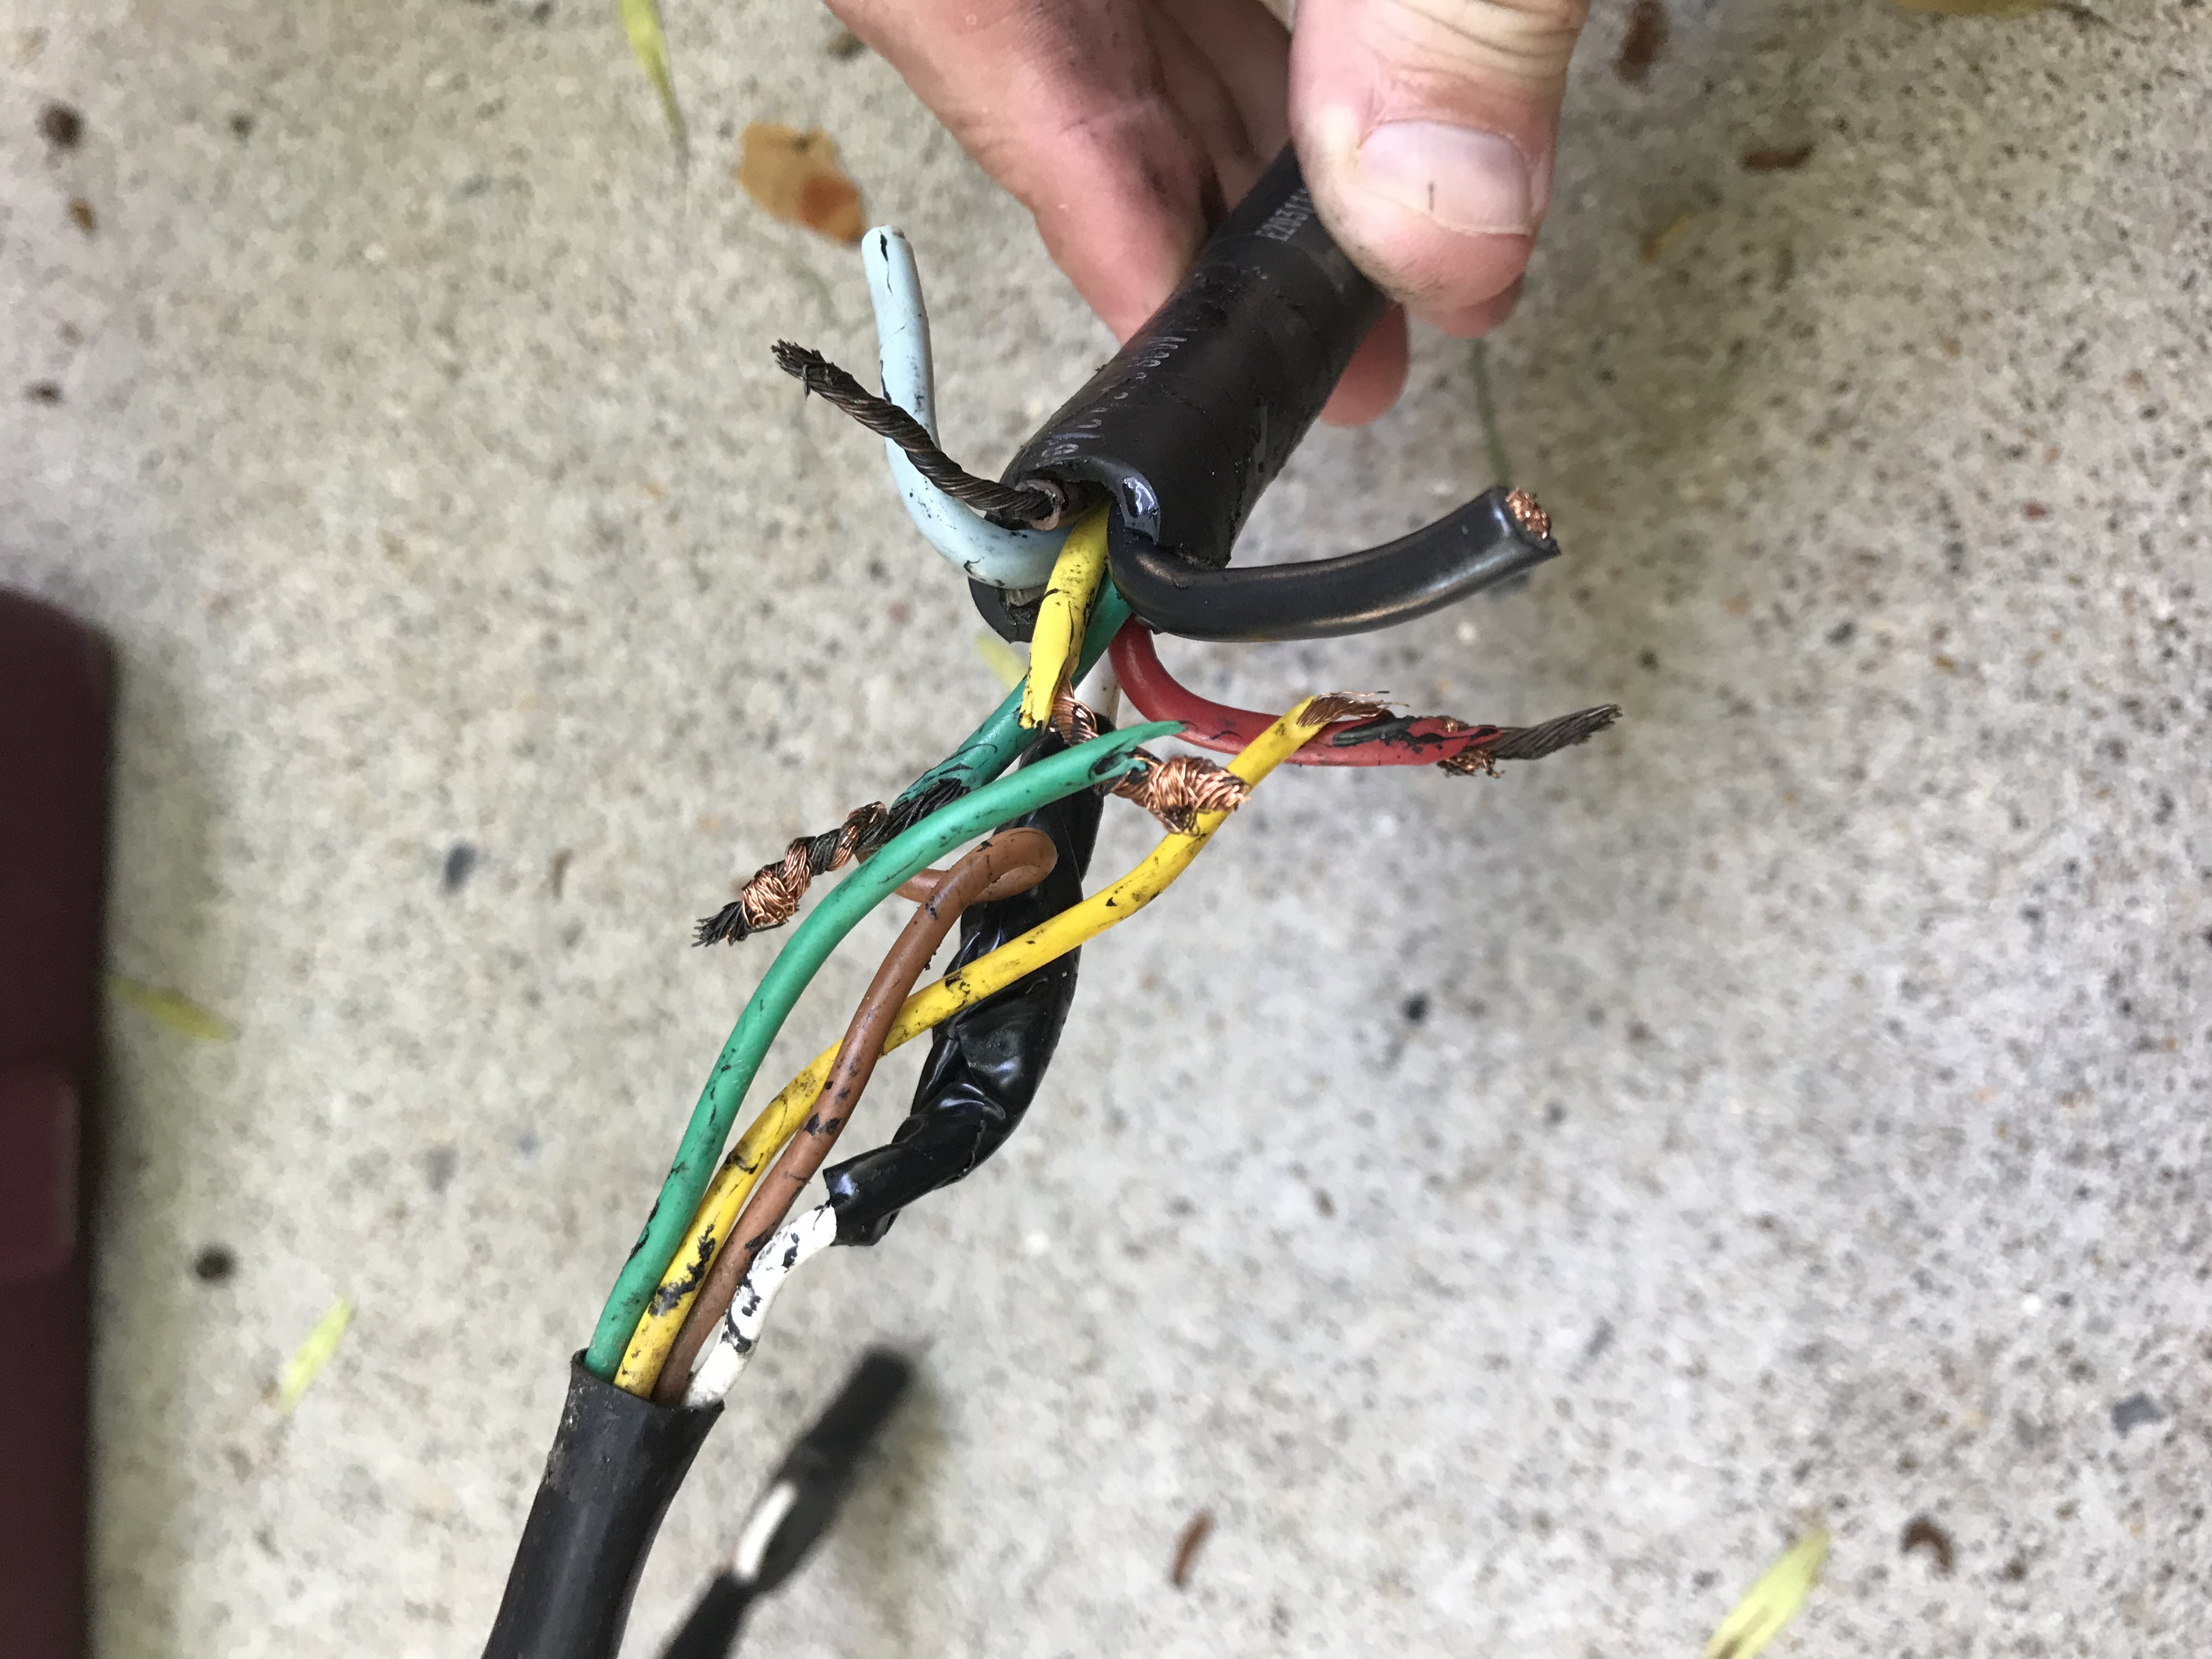 Wiring question about 4 pin plug on pop up-img_6785-1-.jpg